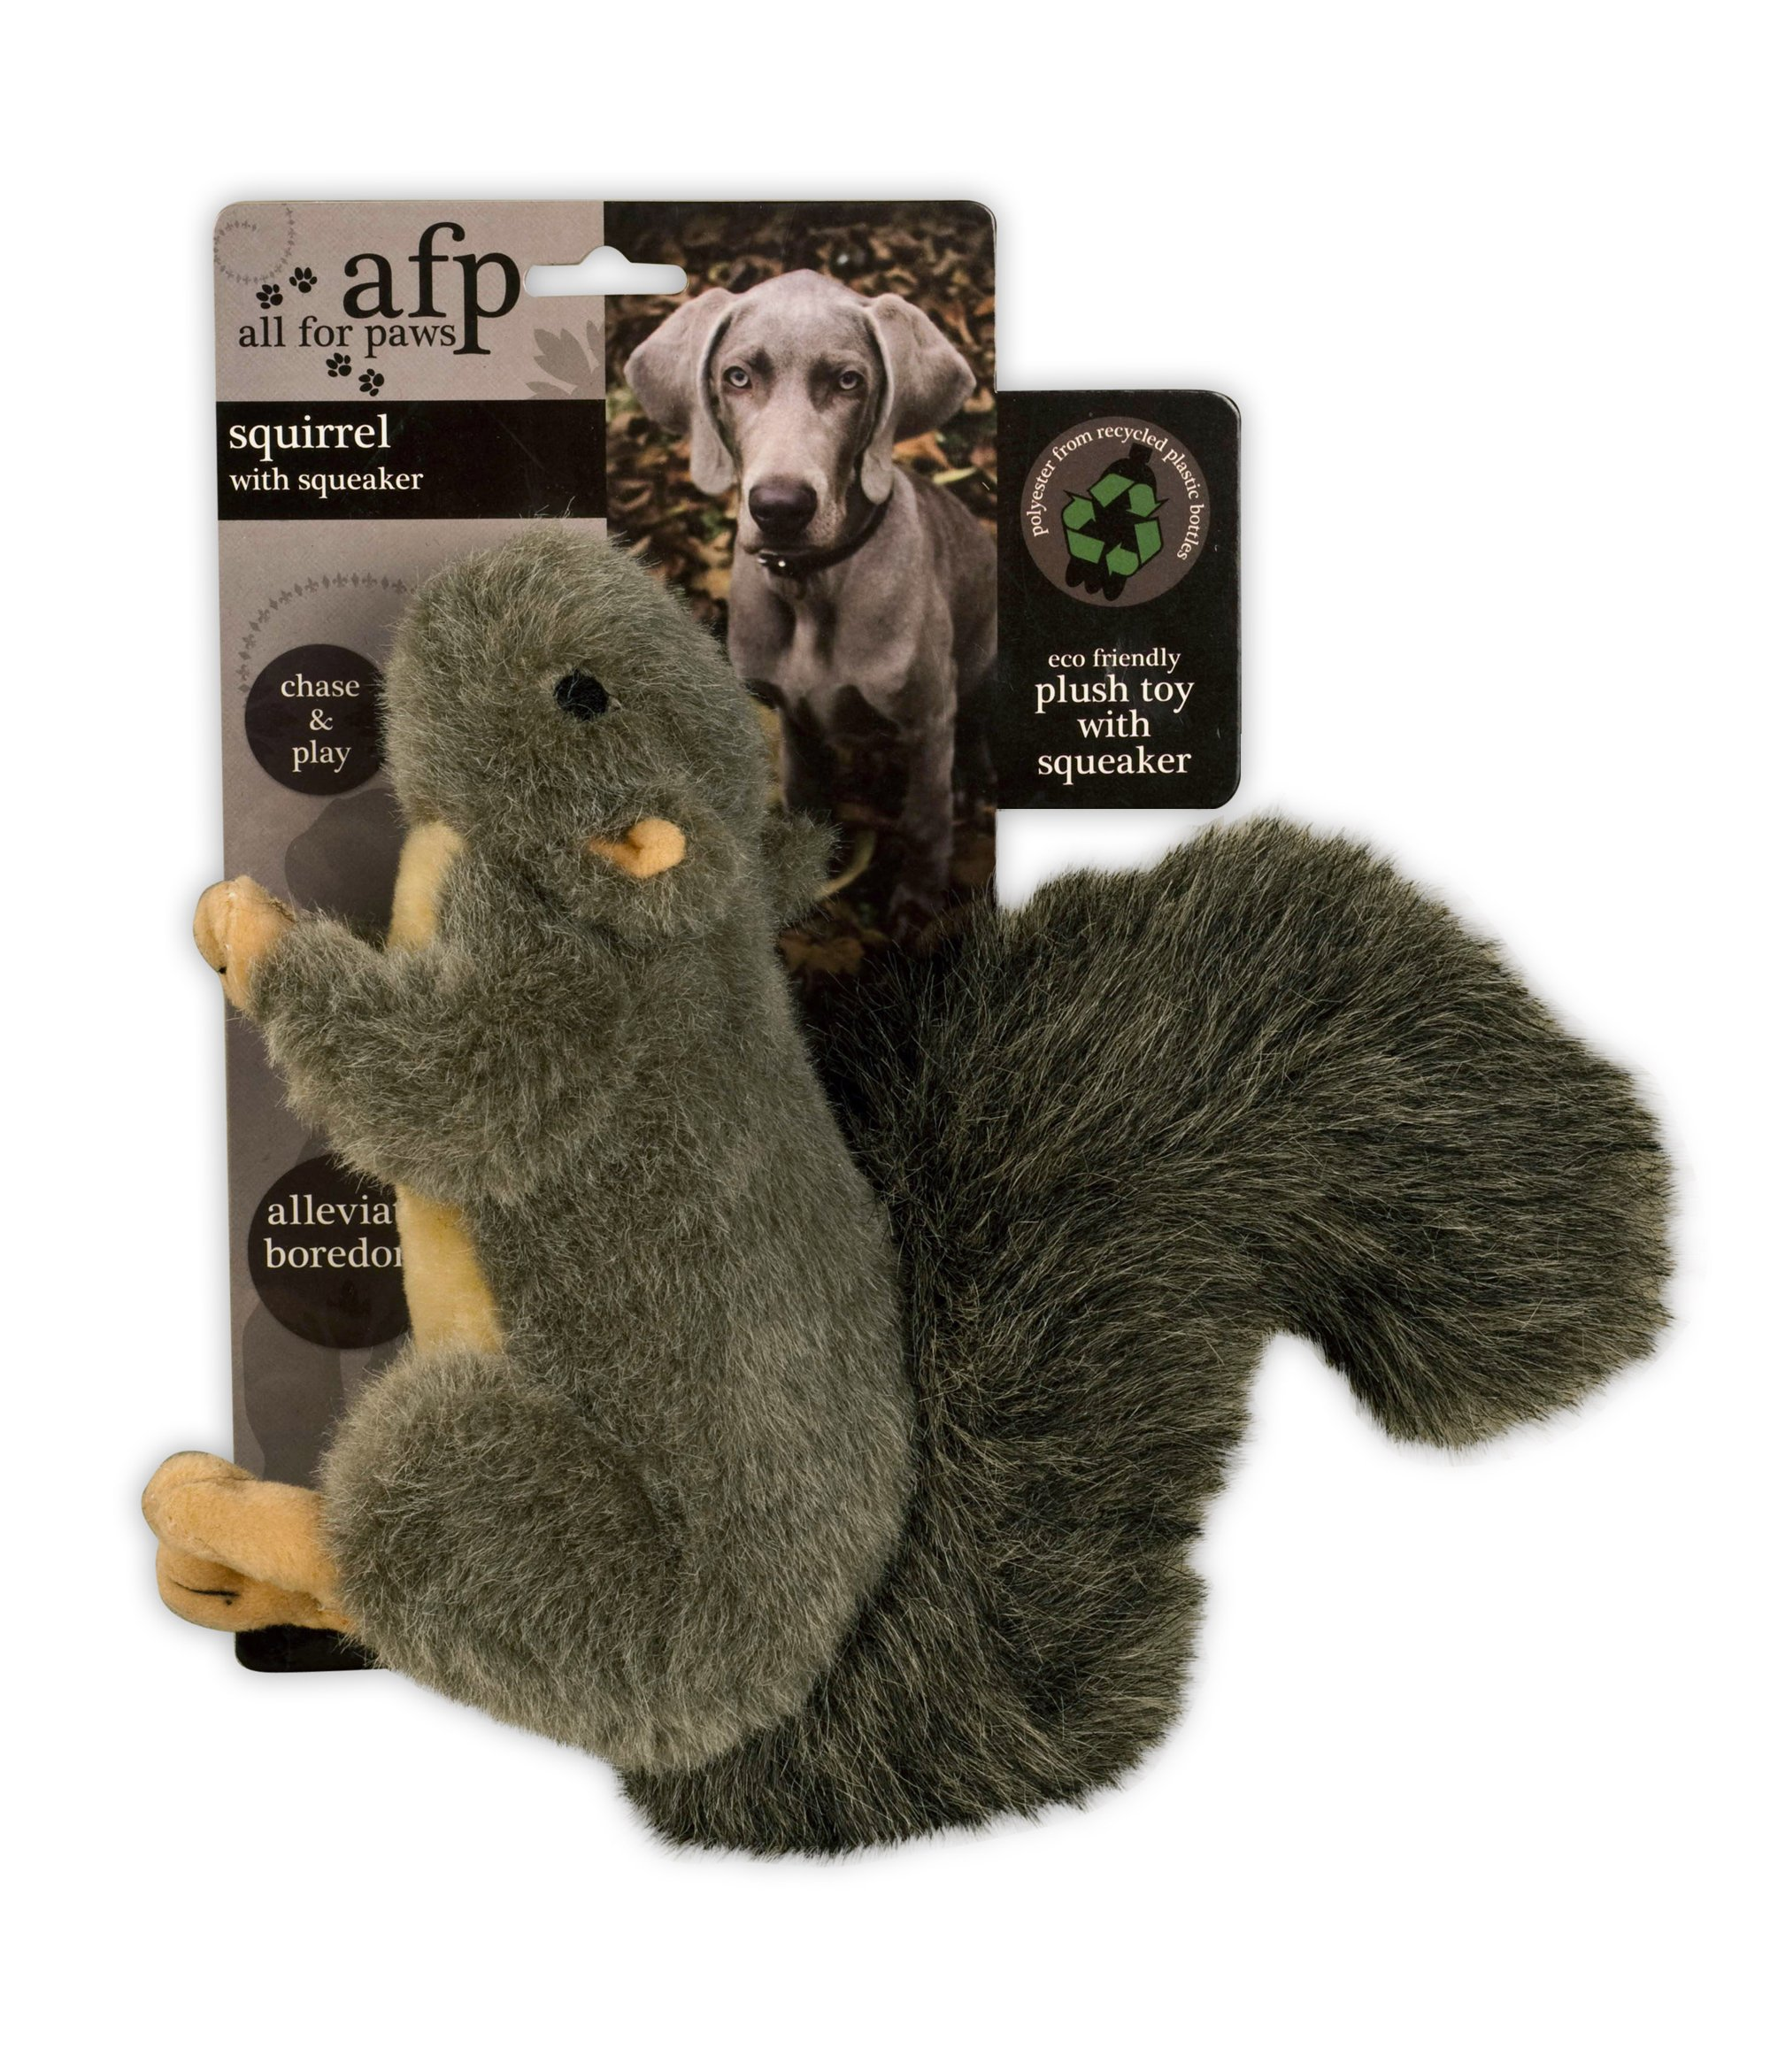 All for Paws Classic Squirrel Pet Toys, Large